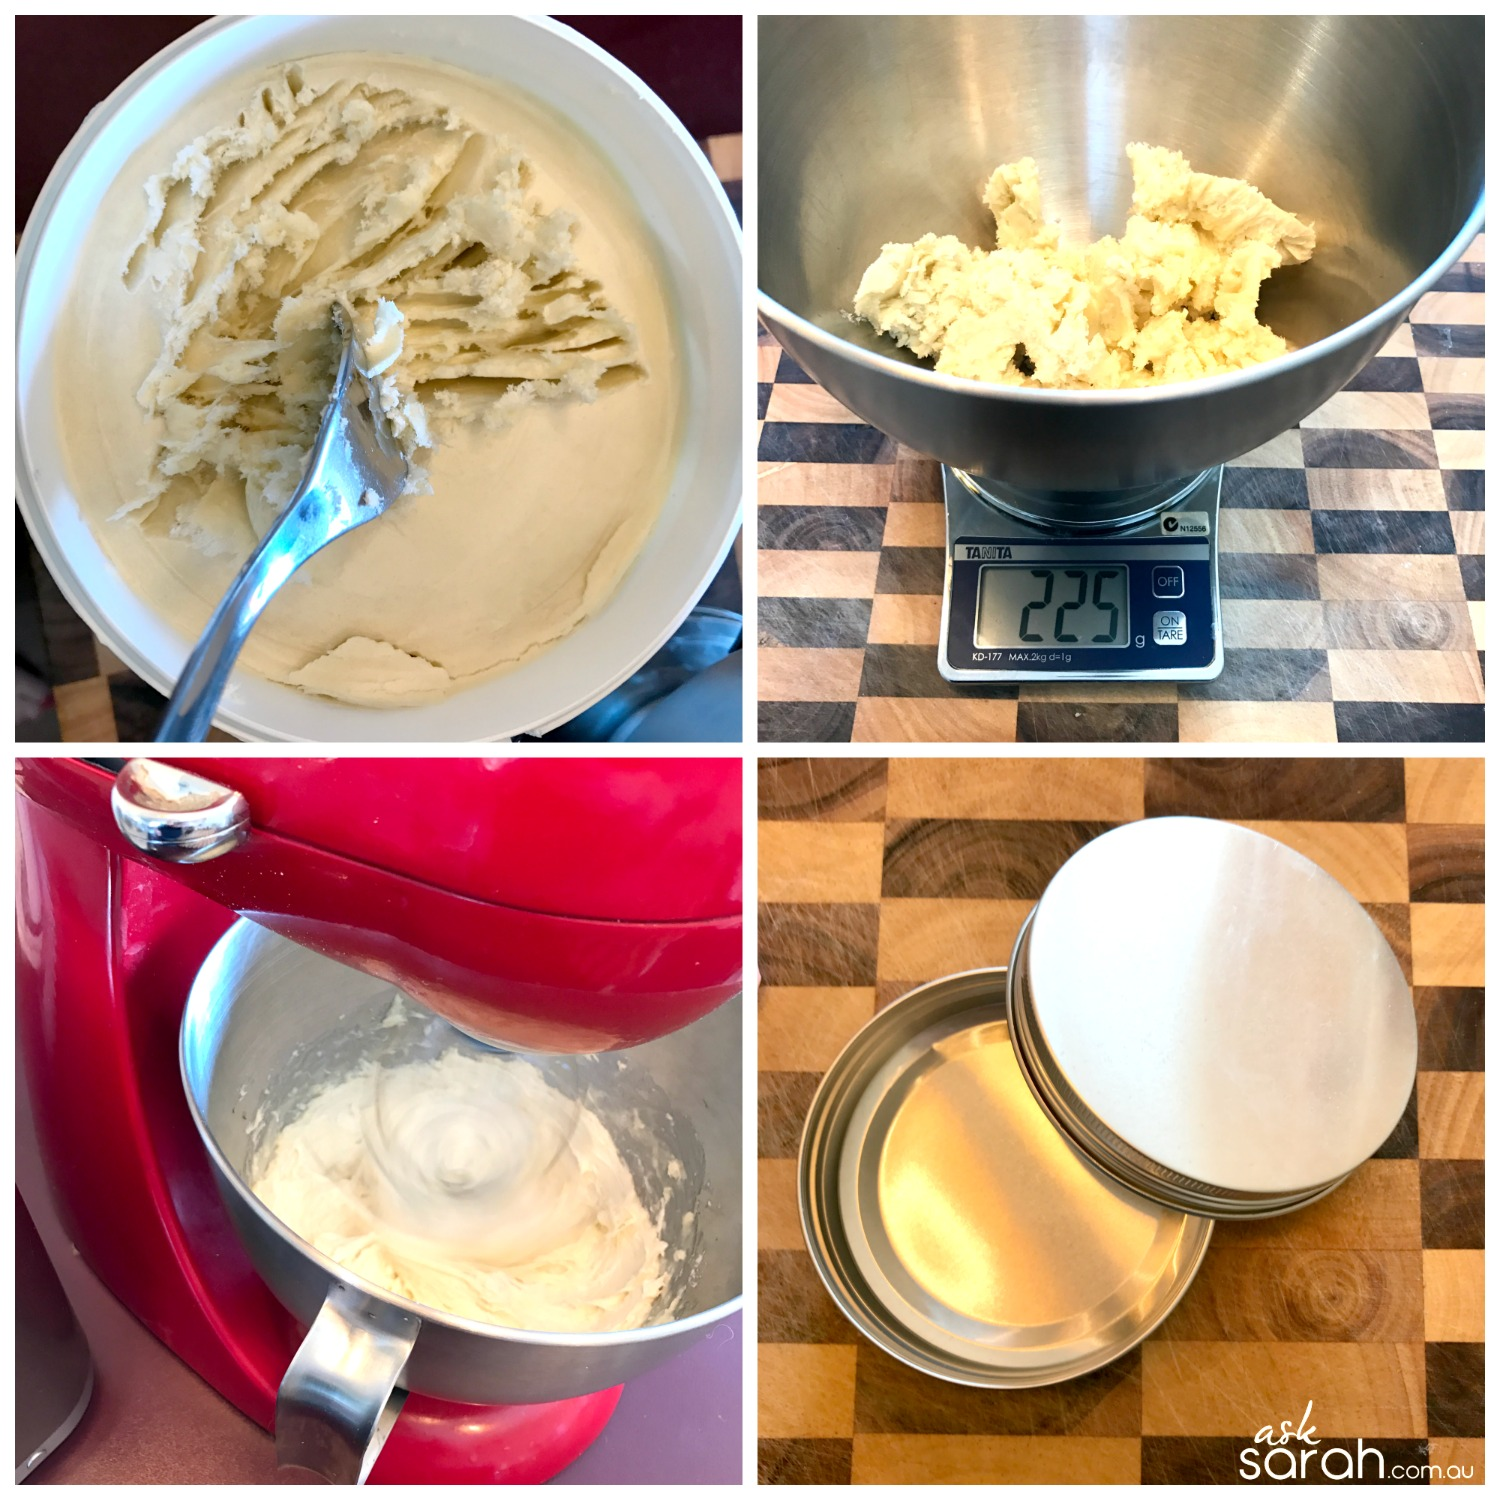 Make: DIY Whipped Shea & Olive Body Butter {Easy, No Heat & Makes A Great Gift!}